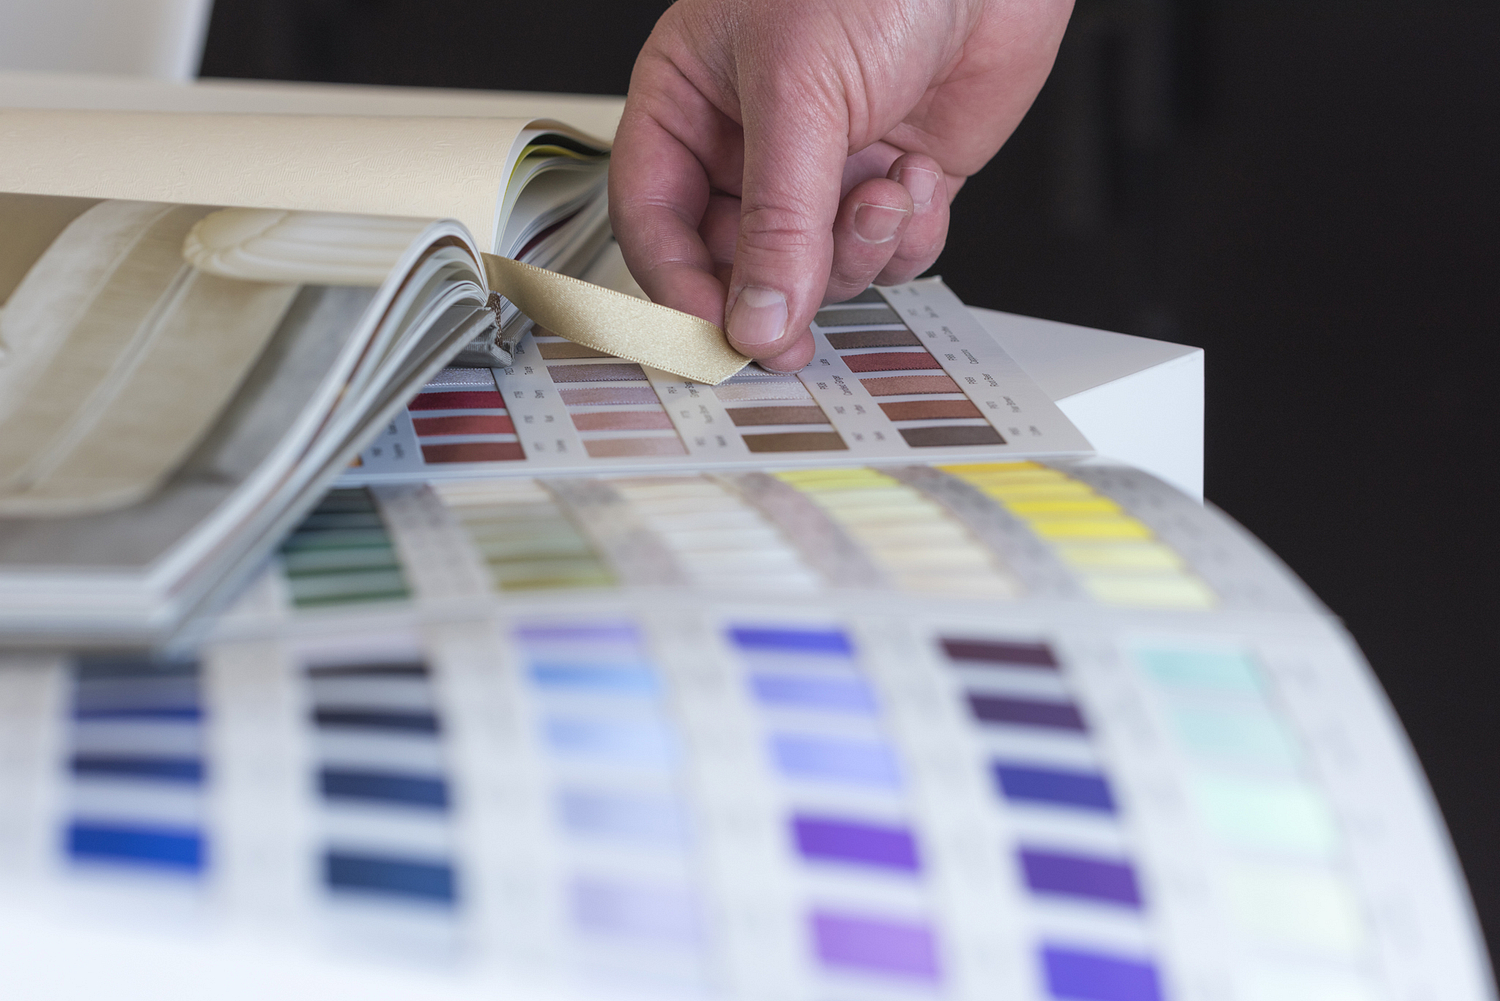 Colour swatch detail with hand, London